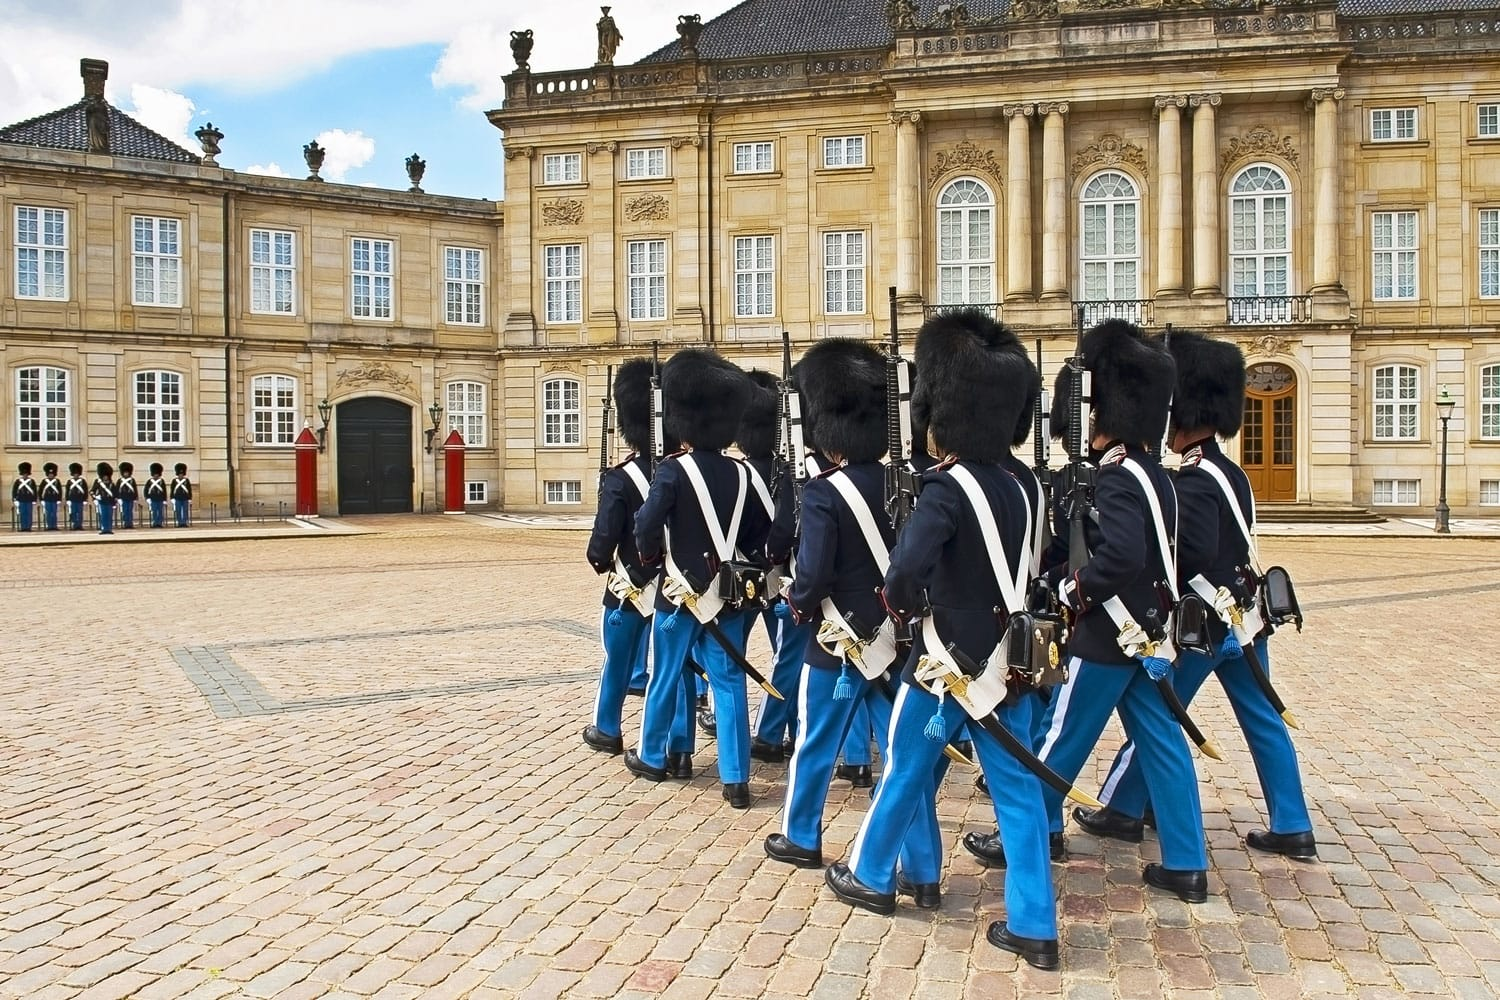 Royal Guard in Amalienborg Castle in Copenhagen in Denmark